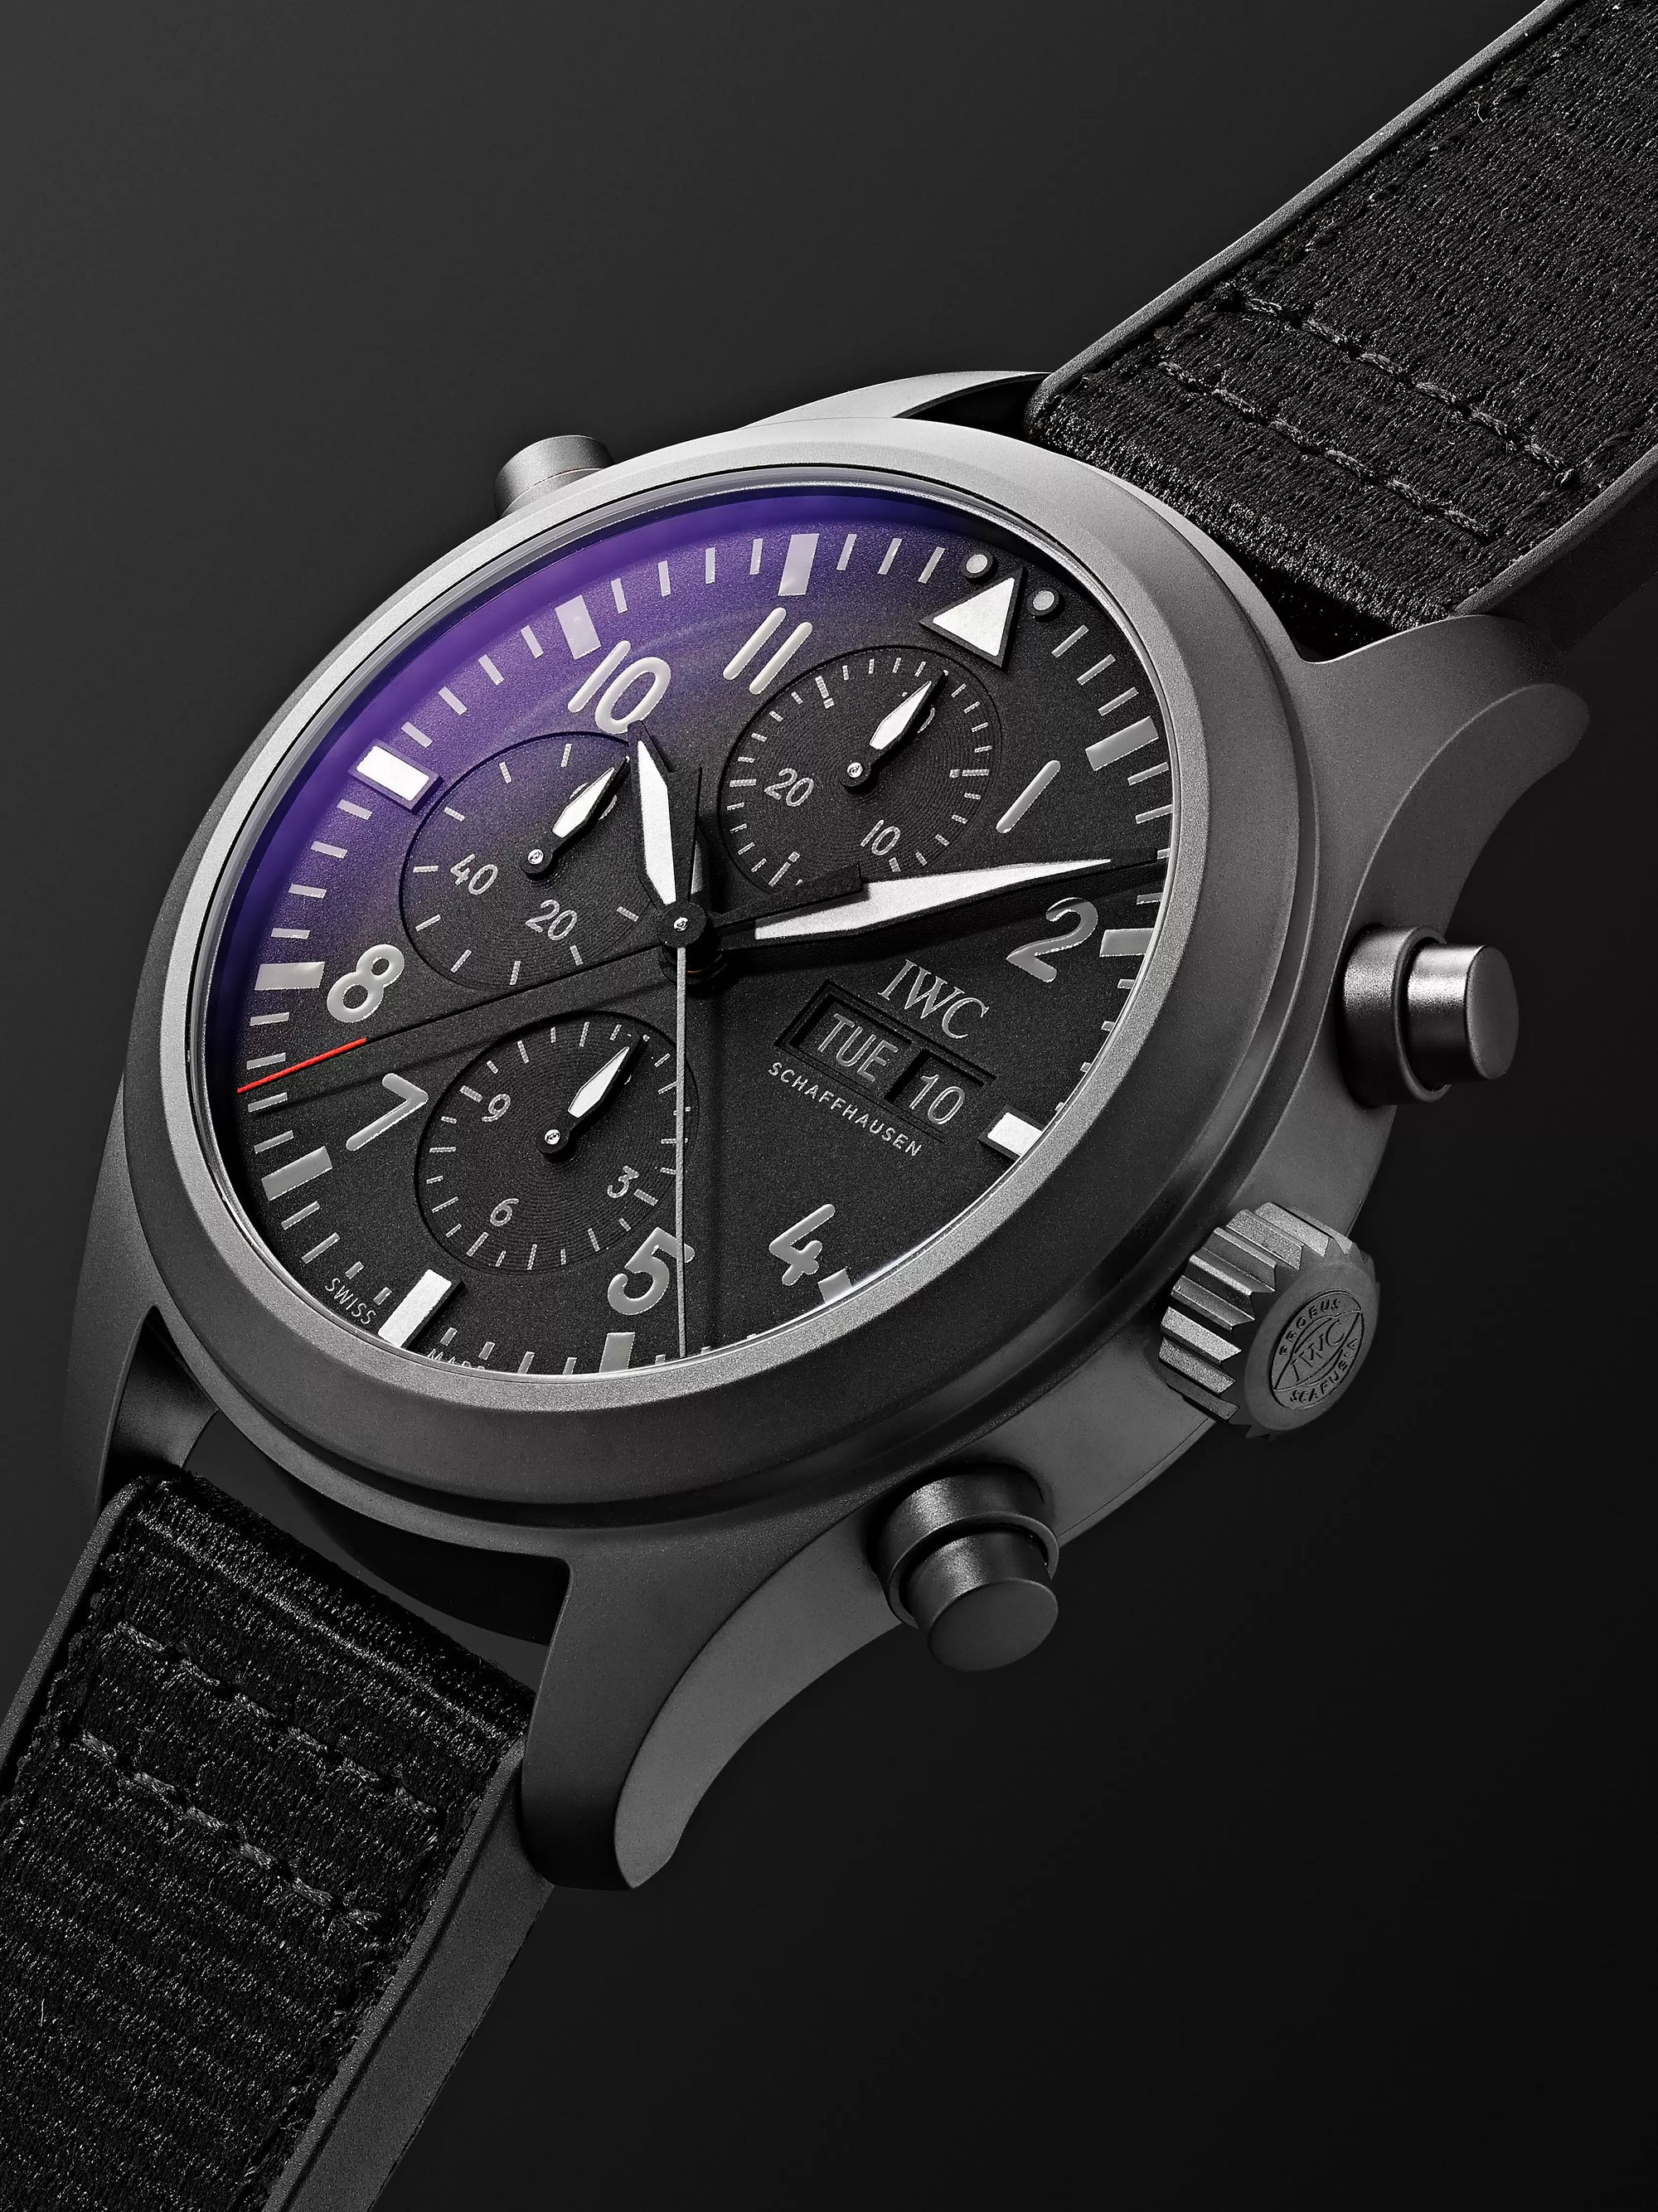 IWC SCHAFFHAUSEN Pilot's TOP GUN Automatic Chronograph 44mm Ceratanium, Webbing and Rubber Watch, Ref. No. IW371815